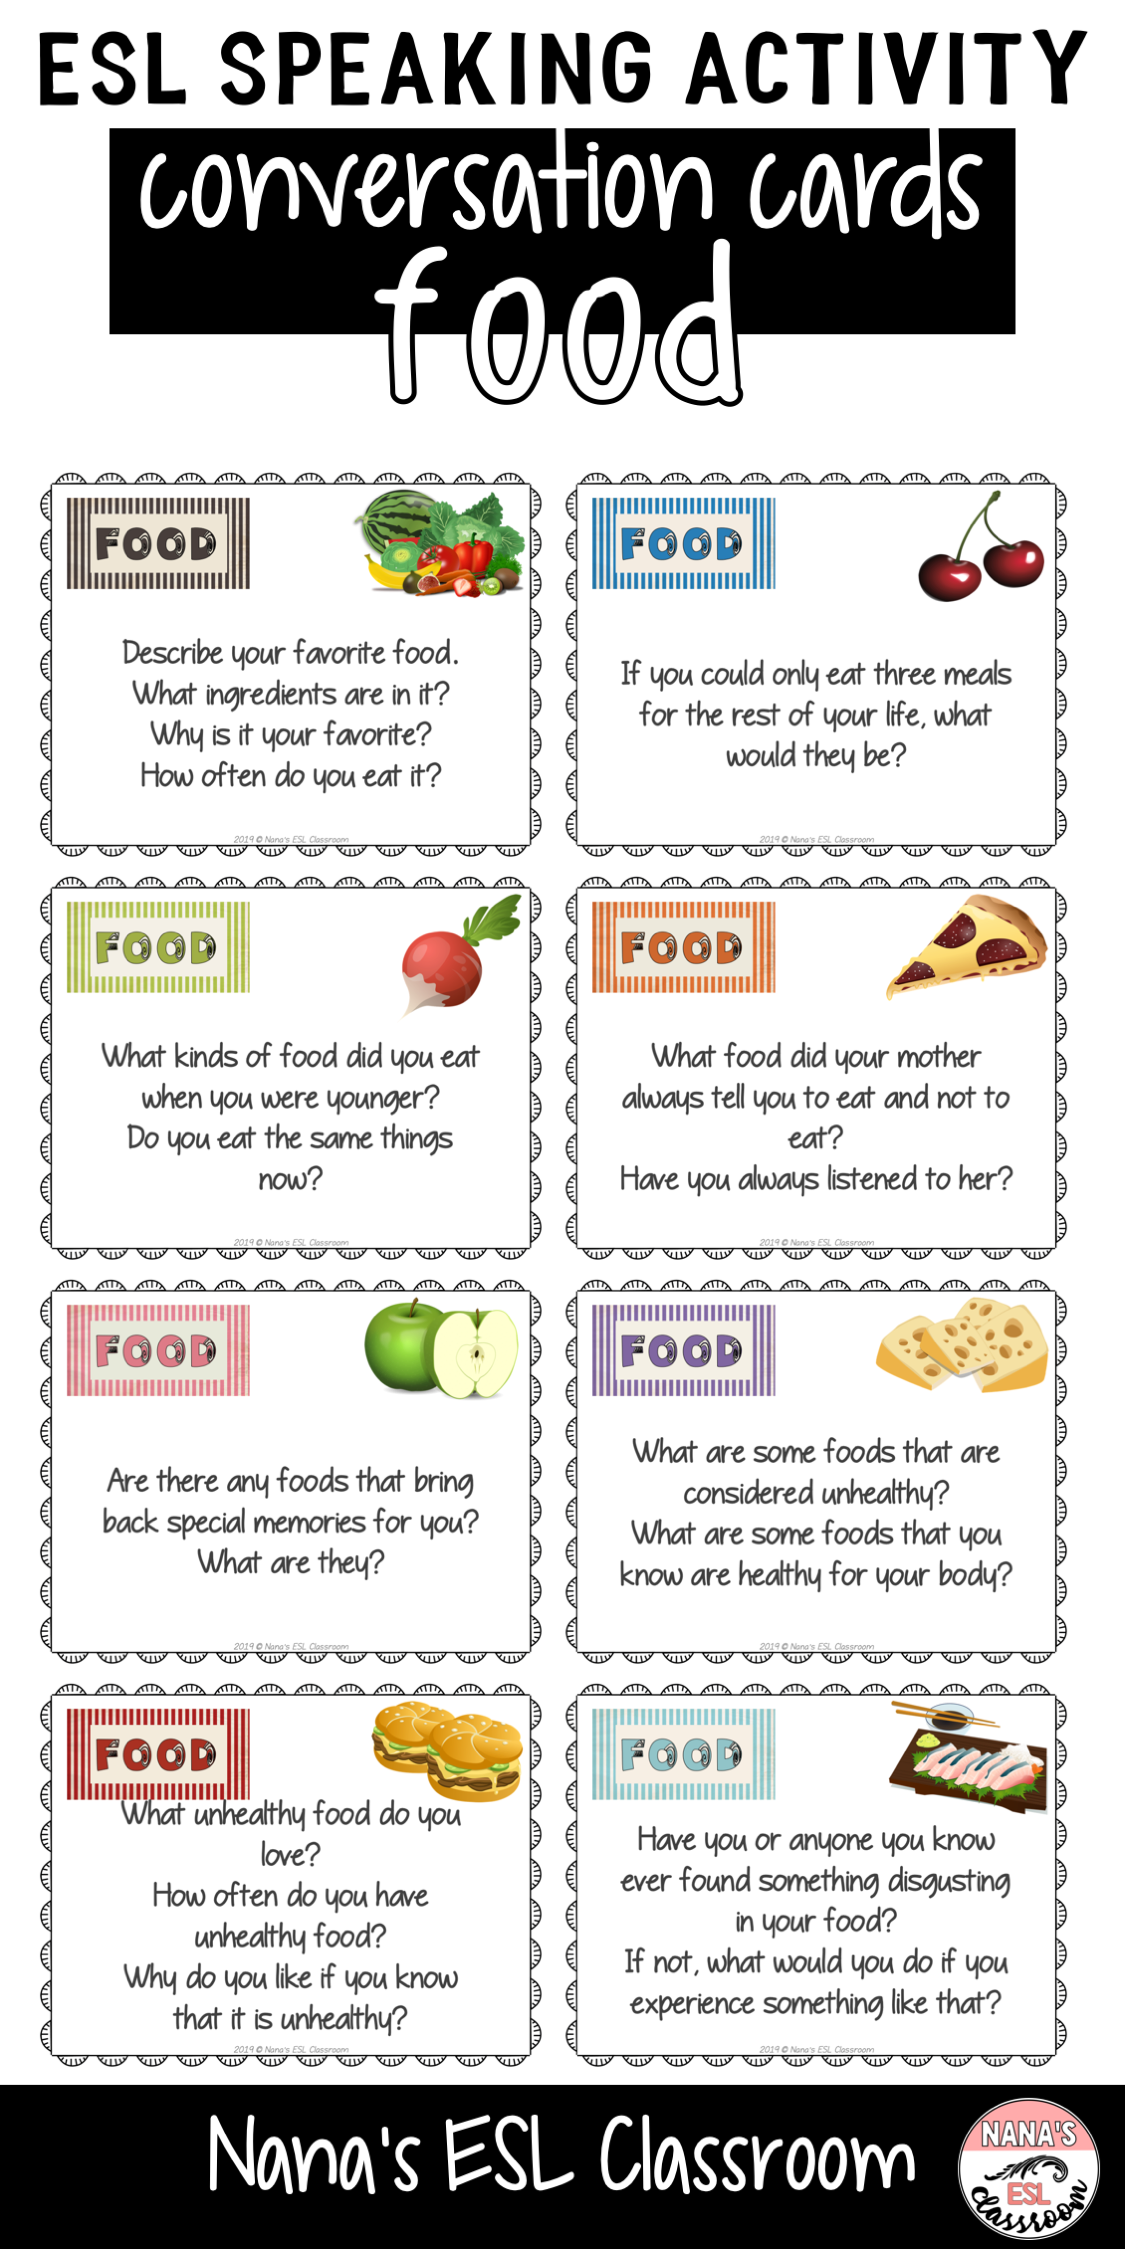 Conversation Starters Cards | Food and Eating Out